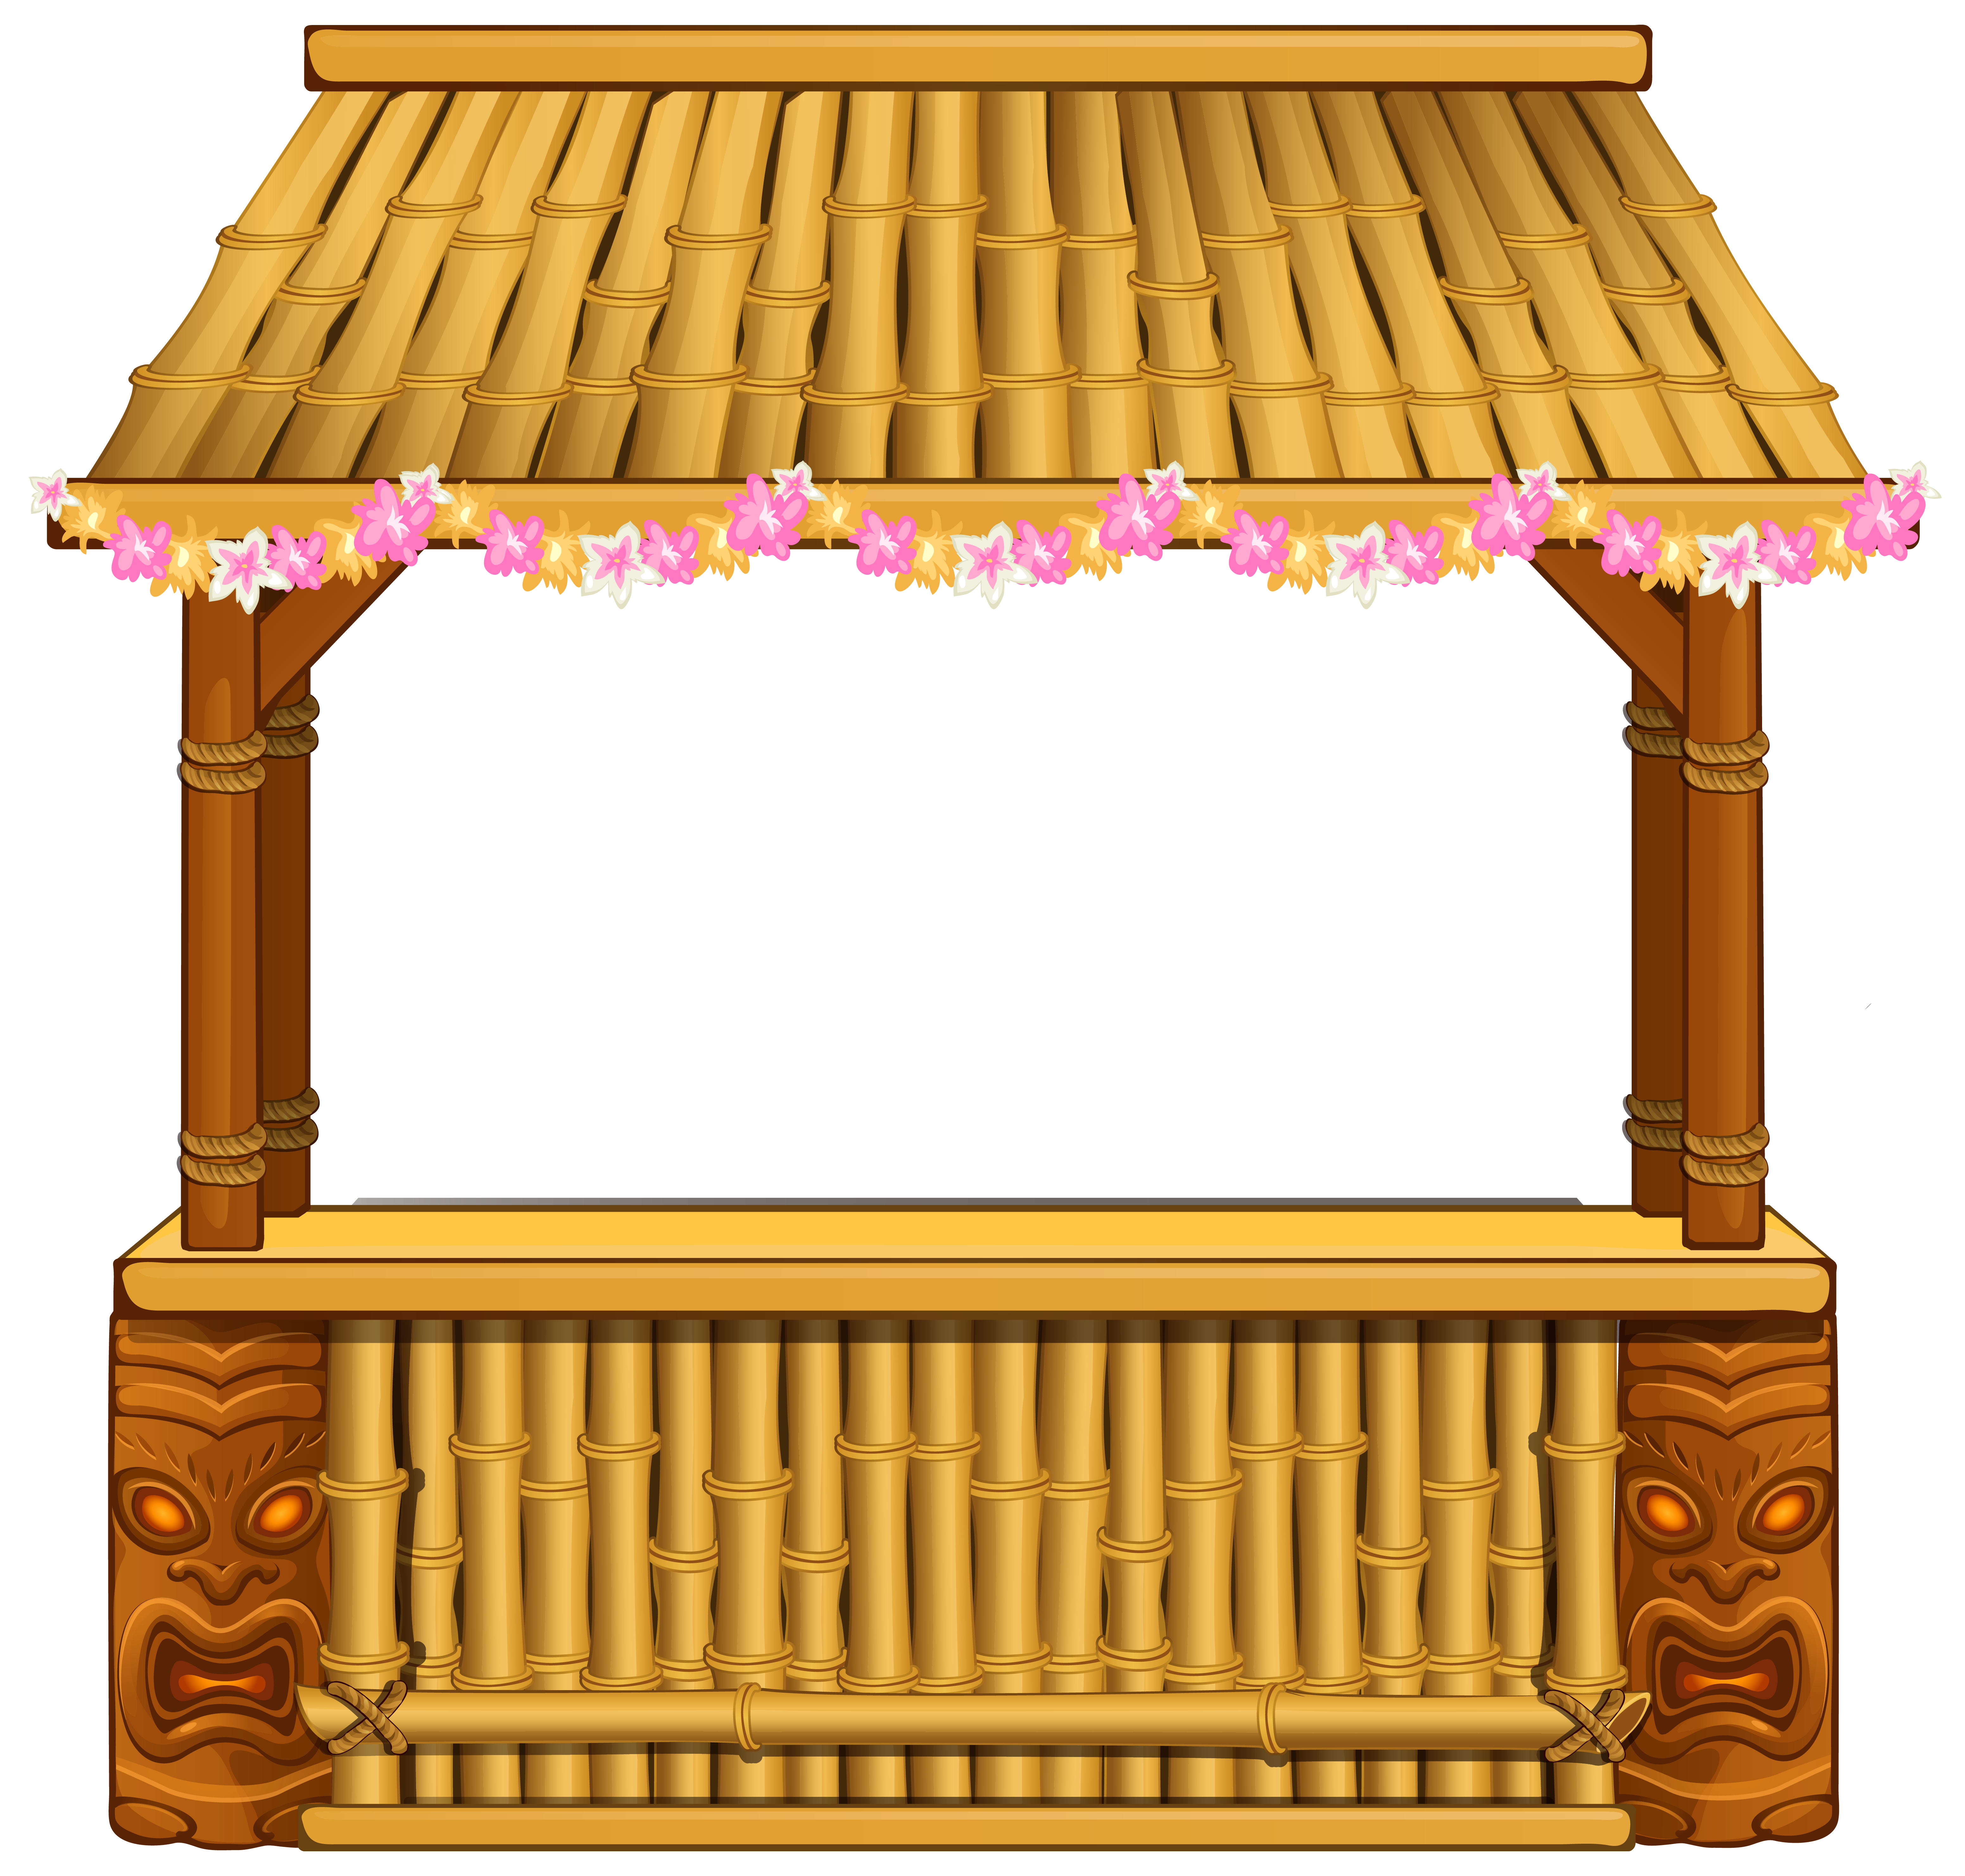 Star bar clipart png free stock Tiki Bar PNG Clipart Image | Gallery Yopriceville - High-Quality ... png free stock